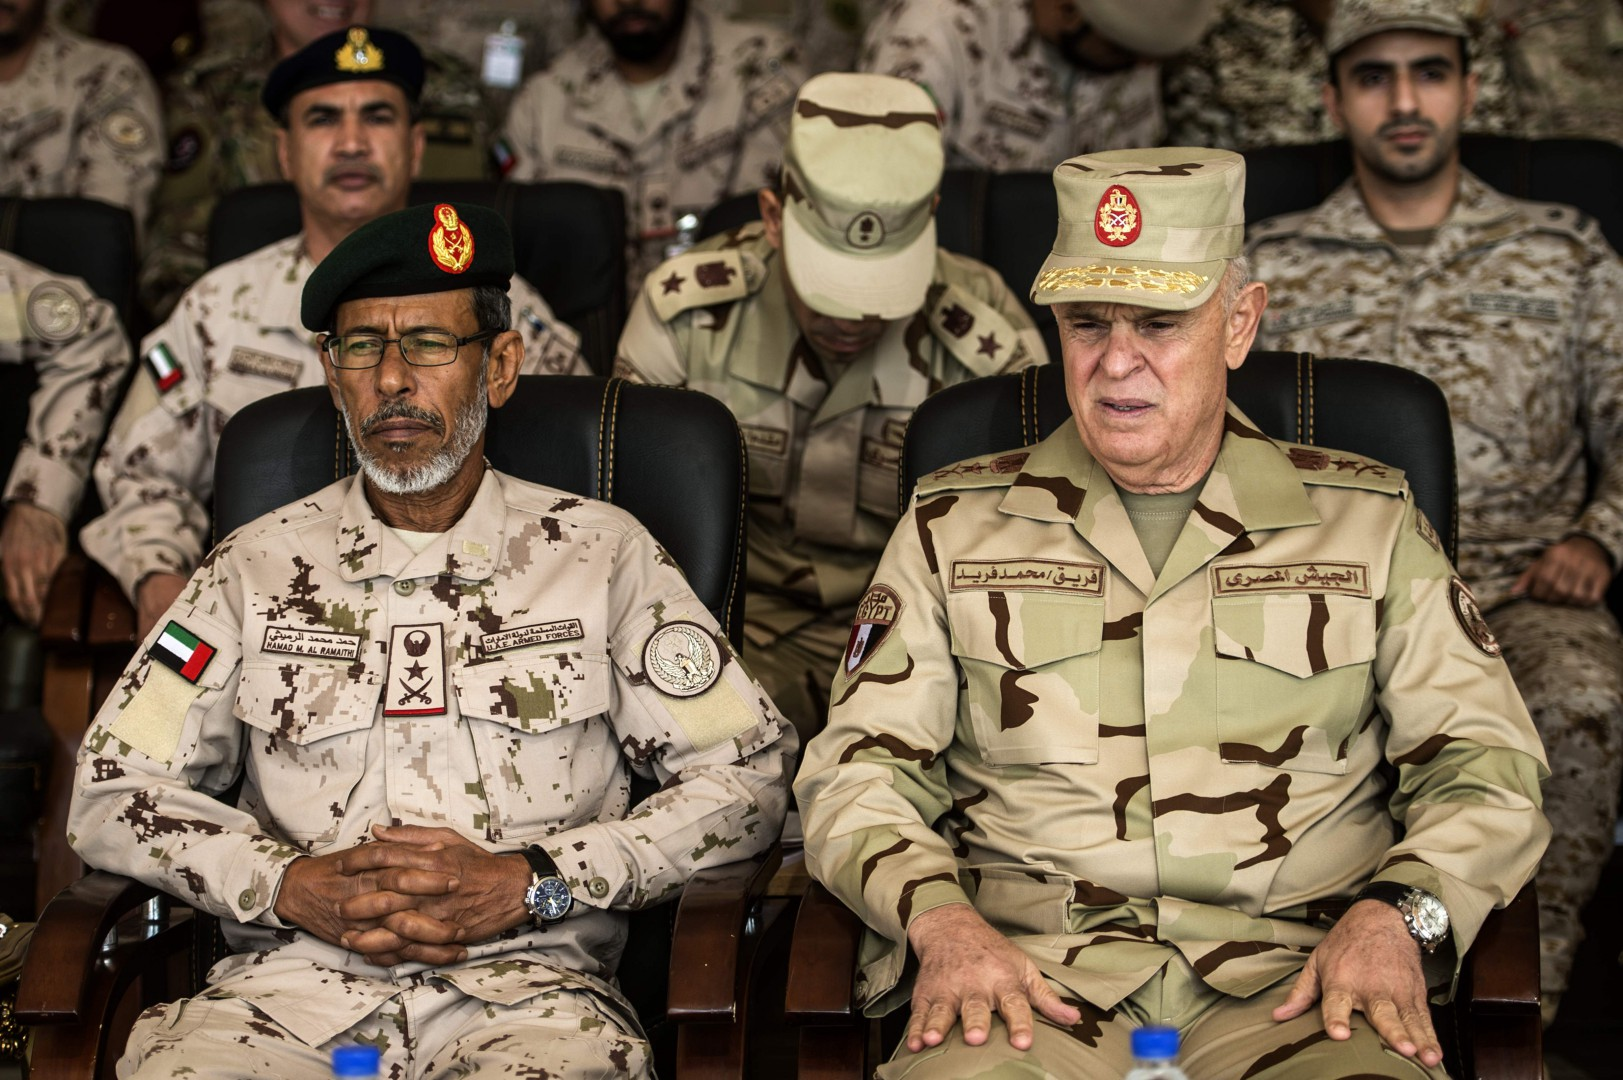 Egyptian army Chief of Staff Mohamed Farid (R), and his Emirati counterpart Hamad Mohammed al-Rumaith the Arab Shield military exercises in the Matrouh Governorate Mohamed Naguib miilitary base, northwest of the capital Cairo on November 15, 2018. - Forces from Saudi Arabia, Egypt, the UAE, Kuwait, Bahrain and Jordan are taking part in the maneuvers. (Photo by Khaled DESOUKI / AFP)